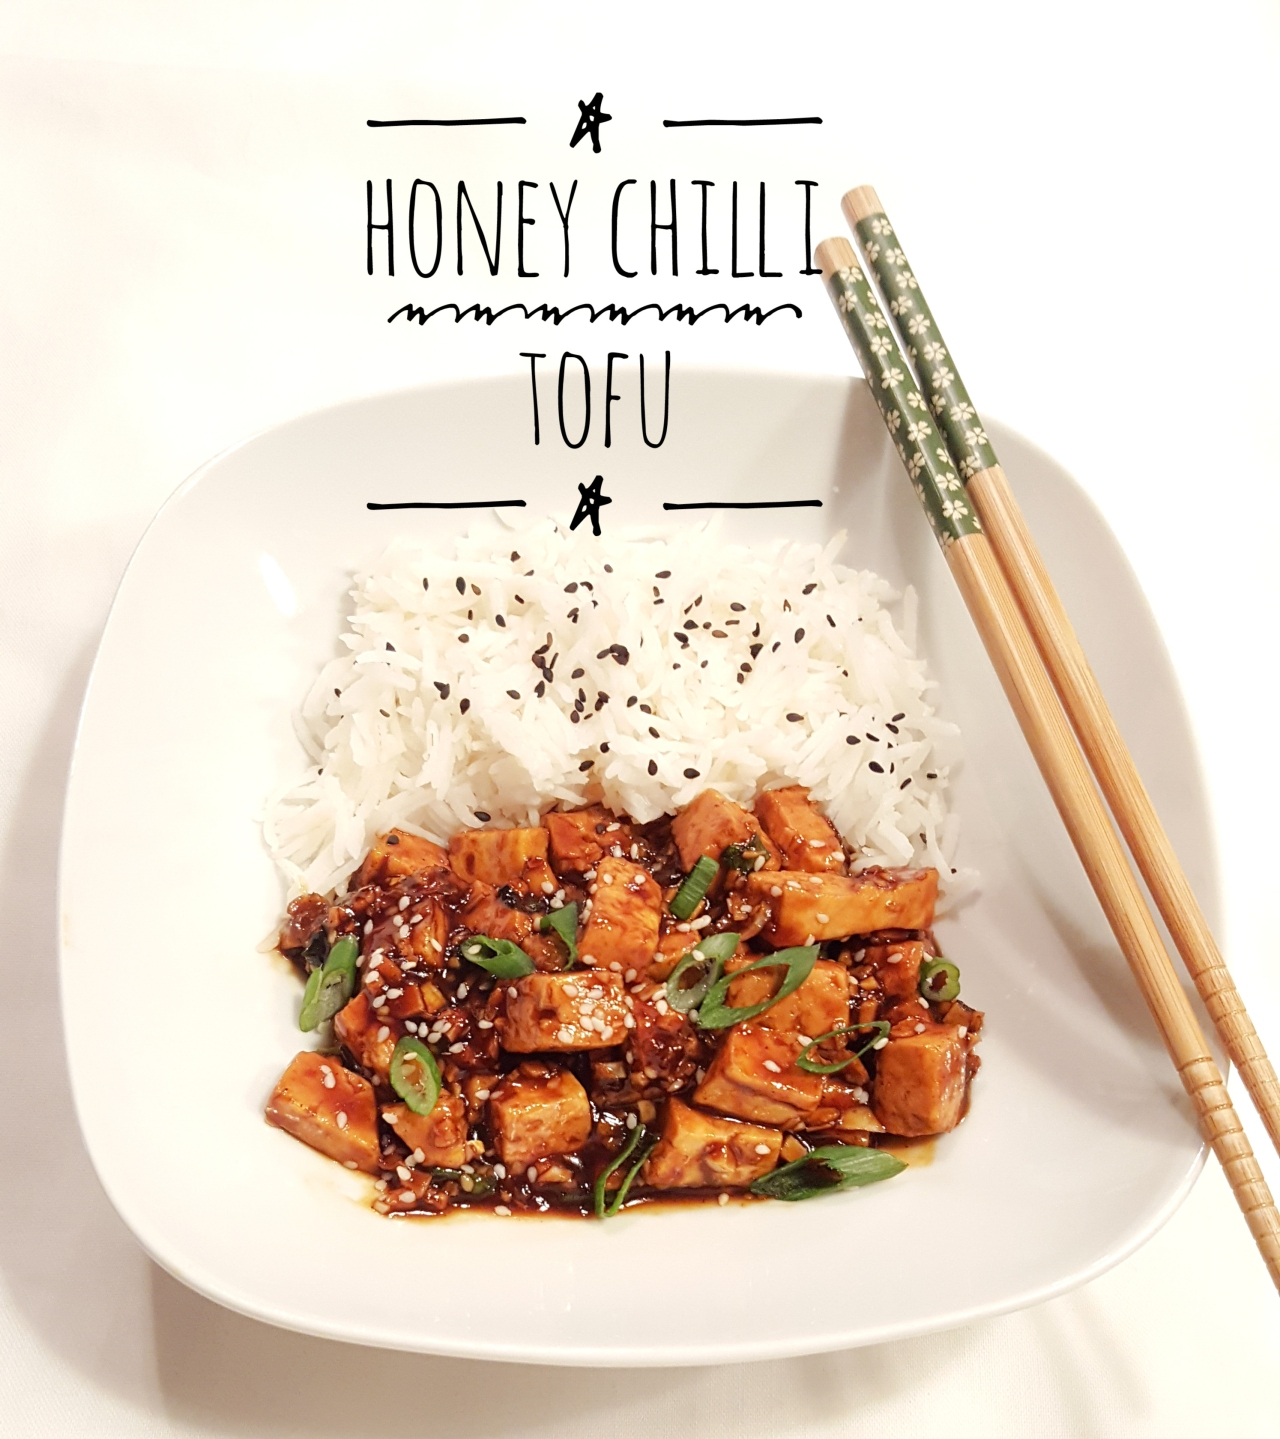 Honey chili tofu